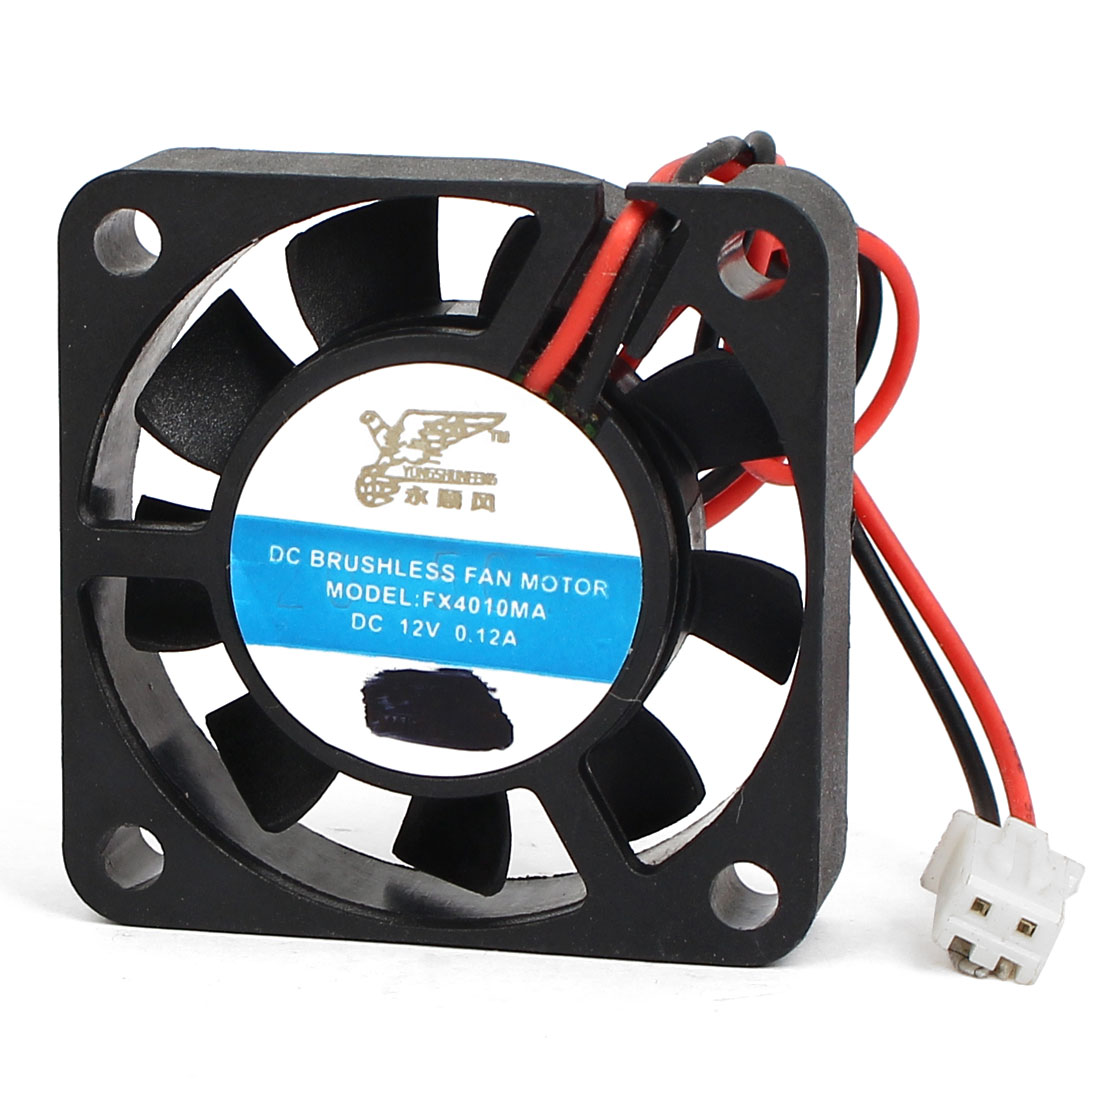 2pcs DC 12V 9 Cutters 2-Terminal Computer Case CPU Cooler Brushless Cooling Fan 4 x 4 x 1cm